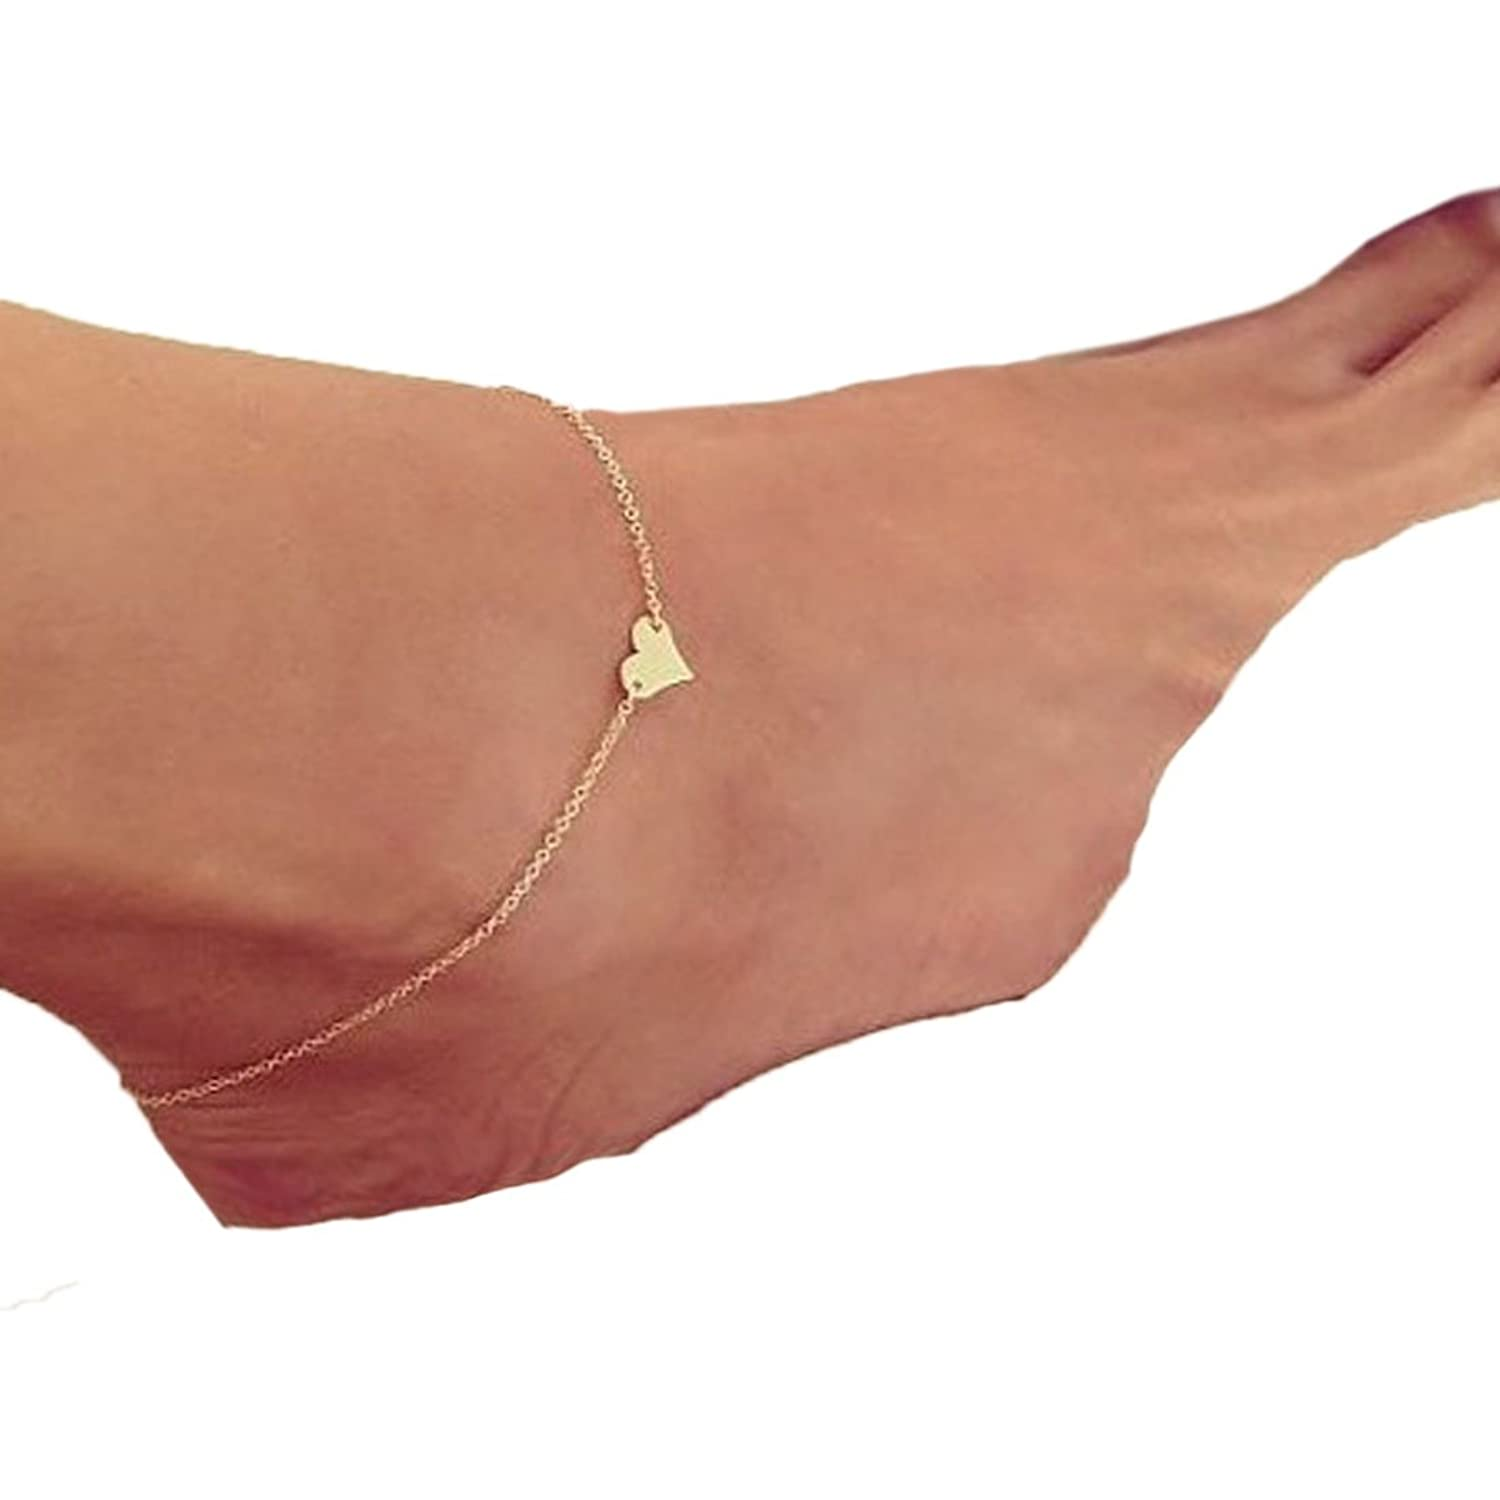 products photo ankle anklet stainless large steel for jewelry gold ion inch g silver collections heart plated bracelets charm retina s and bracelet wholesale lovely